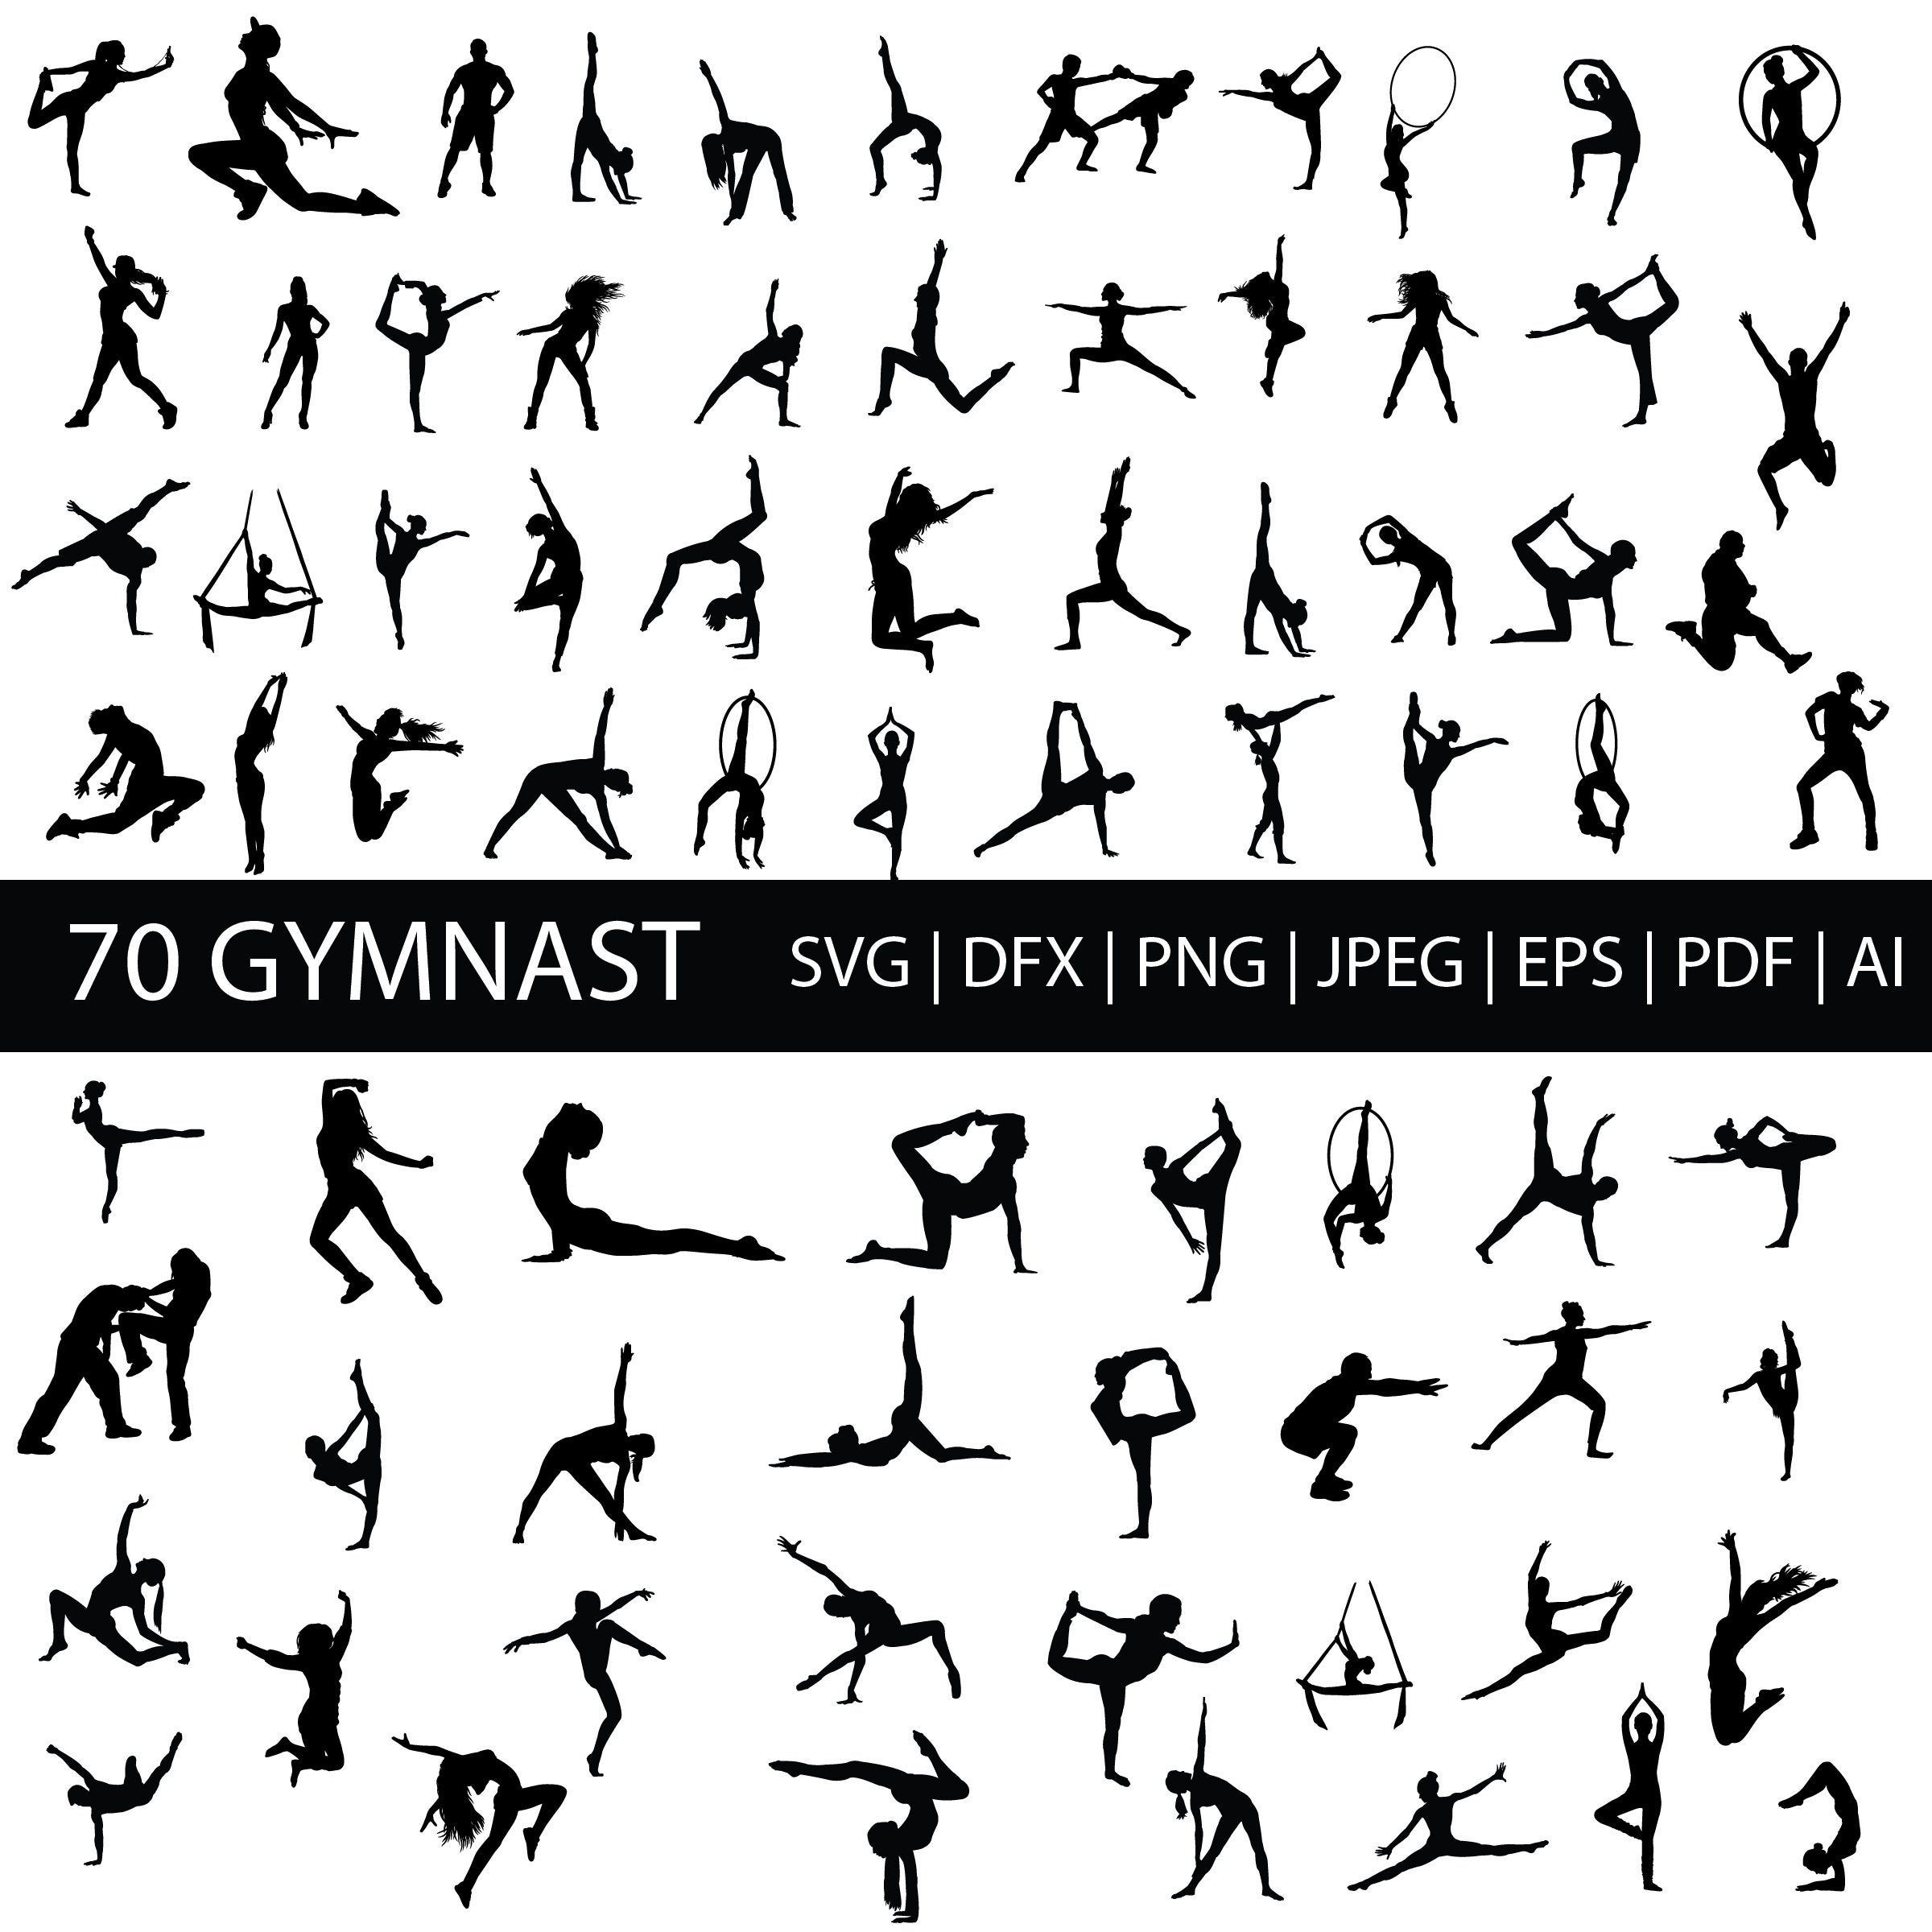 70 Gymnastic Svg Silhouette Clip Art Images In